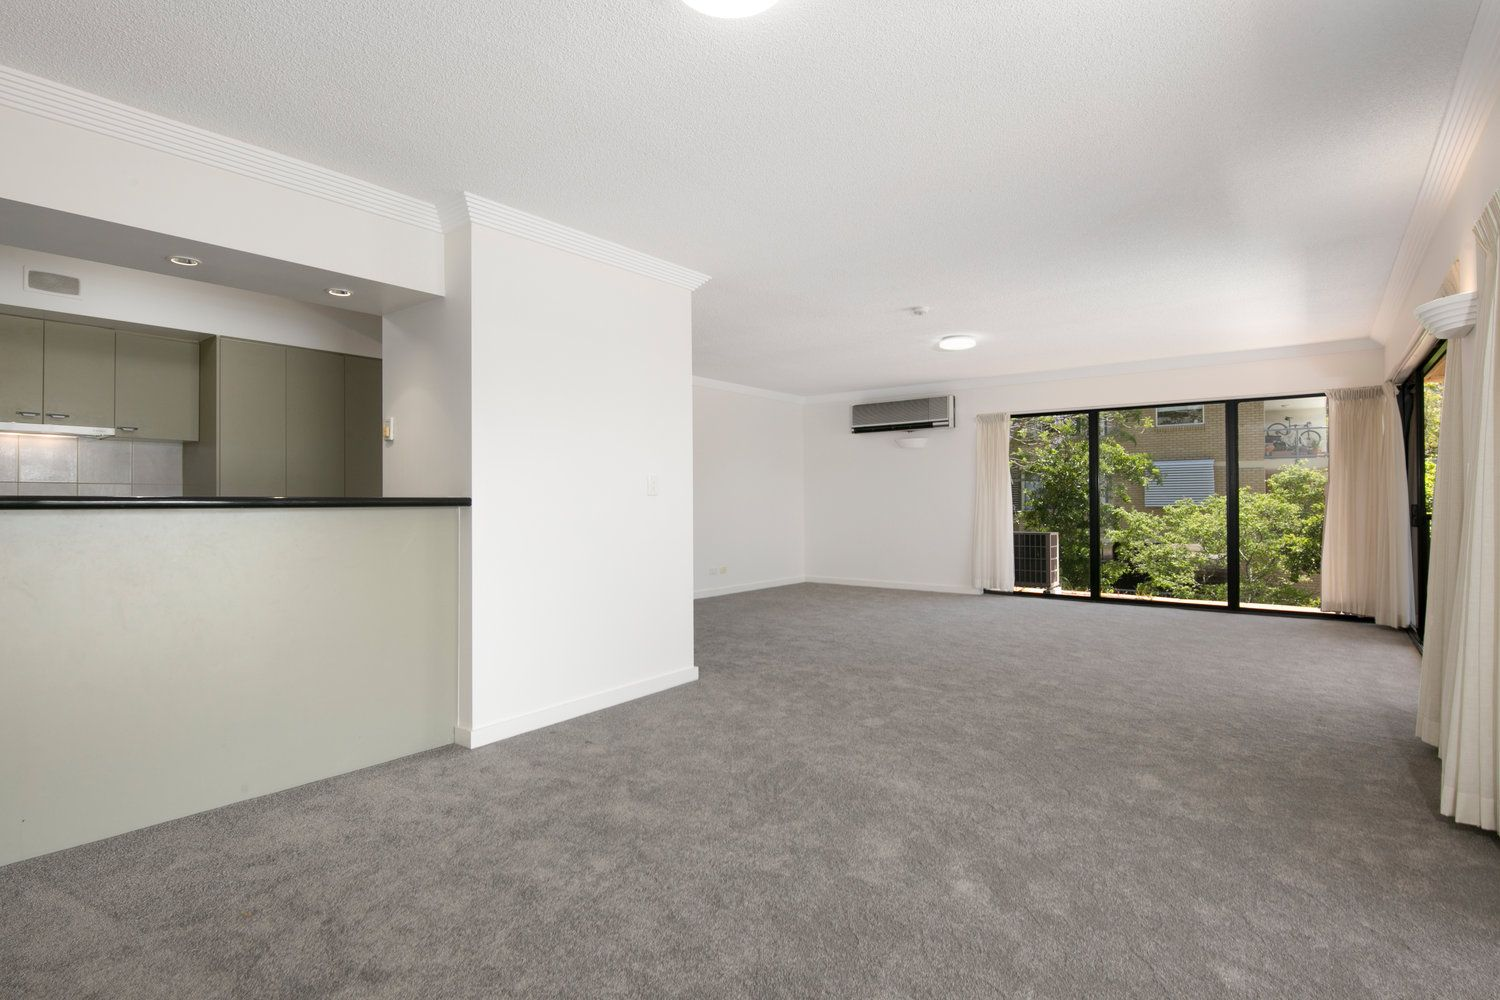 2/172 Macquarie Street, St Lucia QLD 4067, Image 1